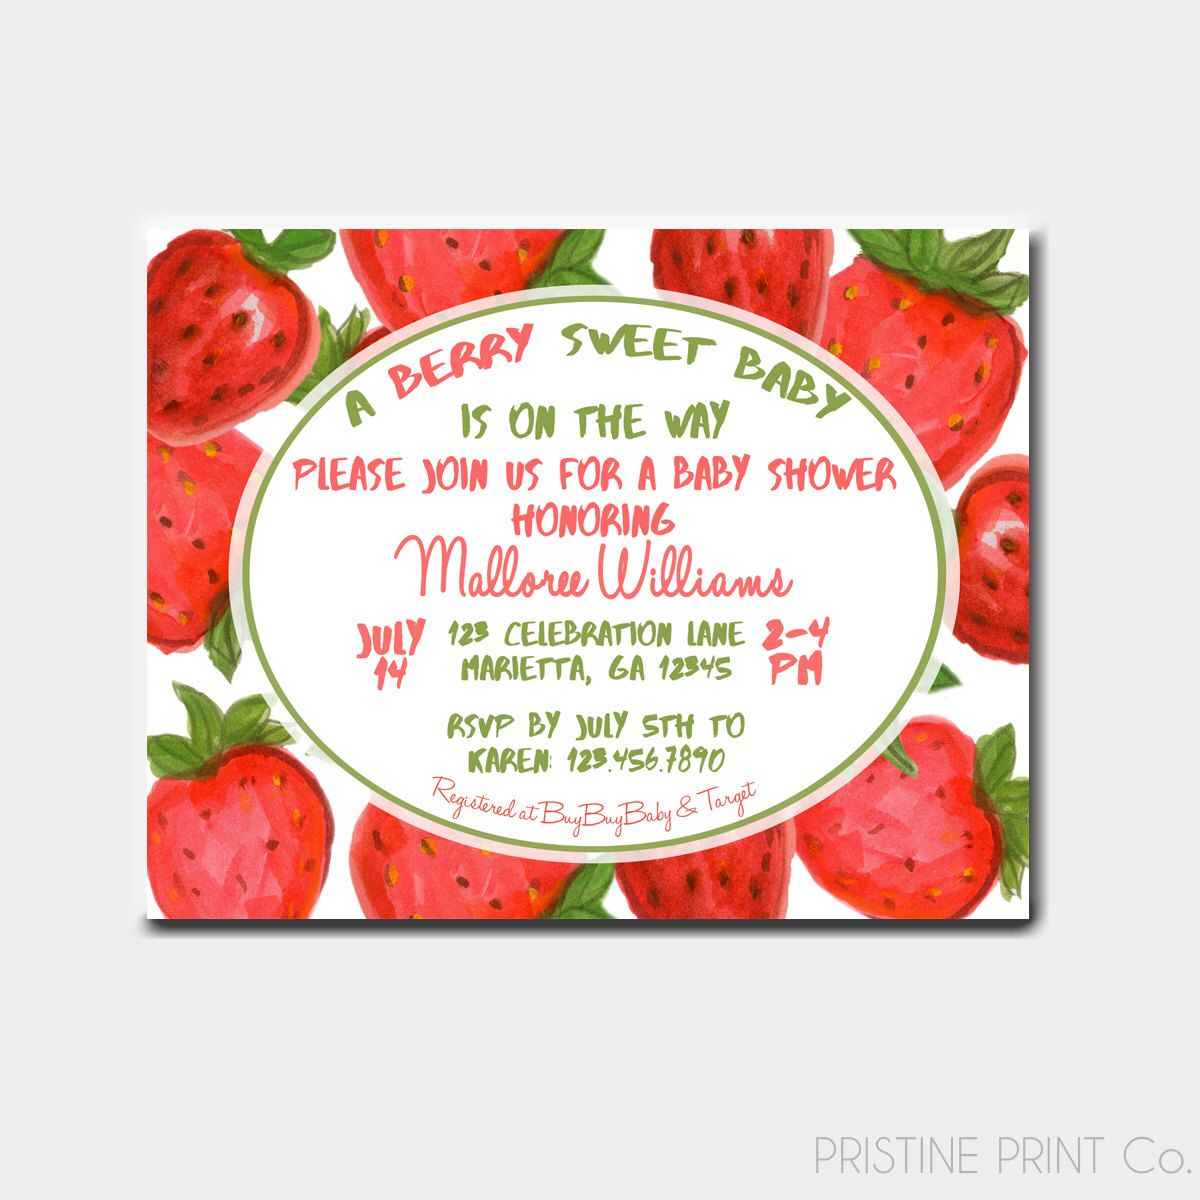 A BERRY Sweet Baby Shower Invitation | A BERRY Sweet Birthday ...